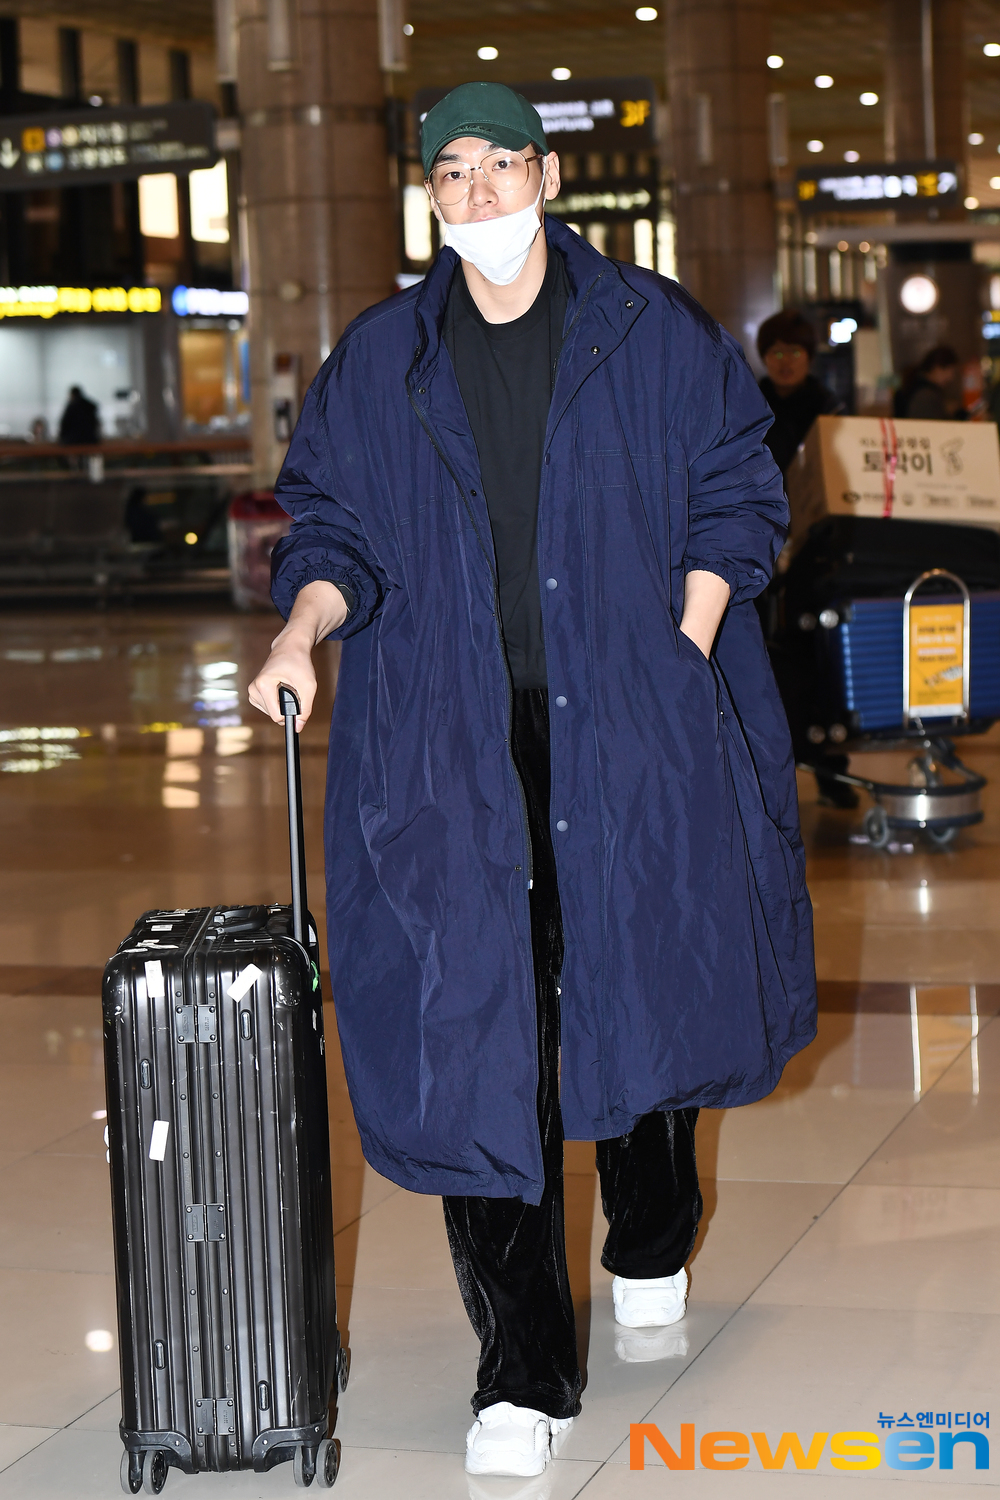 <p>Actor Kim Young-kwang, this 3 15 am Seoul Gangseo way car Gimpo International Airport to Japan through Tokyo Broadcasting System Holdings in the Open, KIM YOUNG KWANG JAPAN OFFICIAL FANCLUB 1 Anniversary Party to attend car Tokyo Broadcasting System Holdings Haneda with the departure.</p><p>Actor Kim Young-kwang, this airport fashion and Tokyo Broadcasting System Holdings Haneda with the departure.</p>